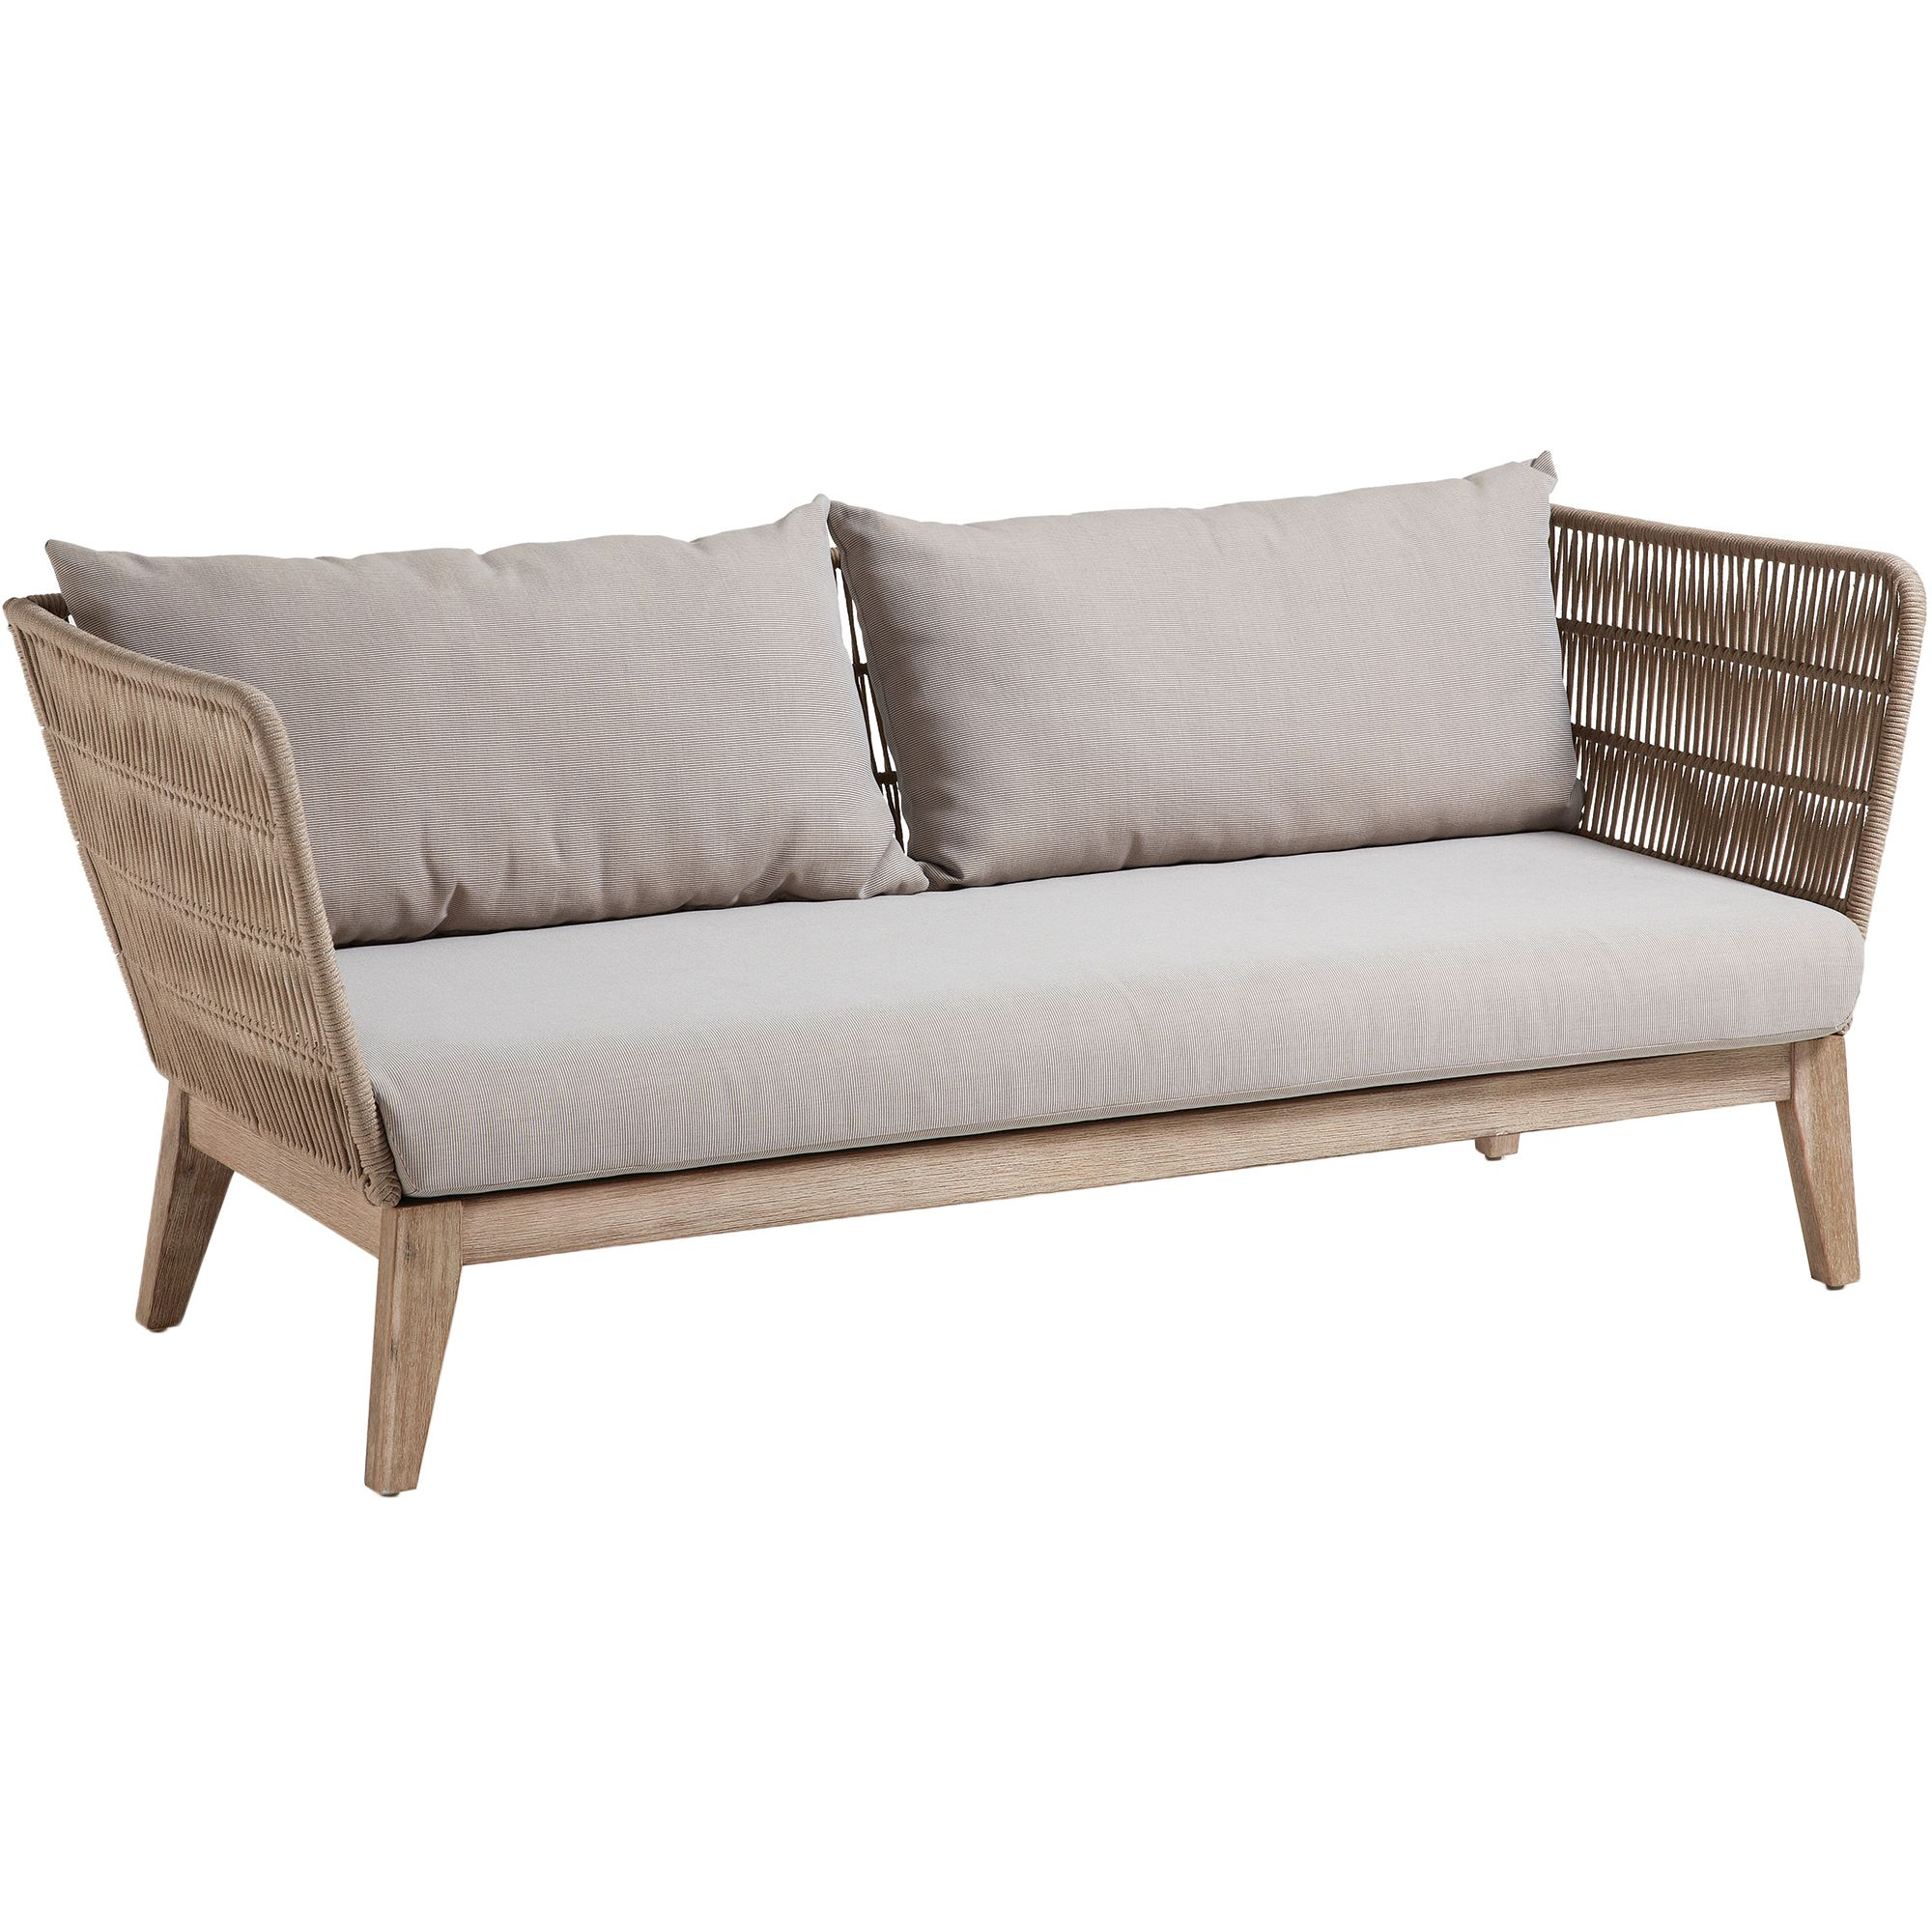 Daybed Outdoor Tchibo Beige Wallace 3 Seater Outdoor Sofa In 2019 Furniture